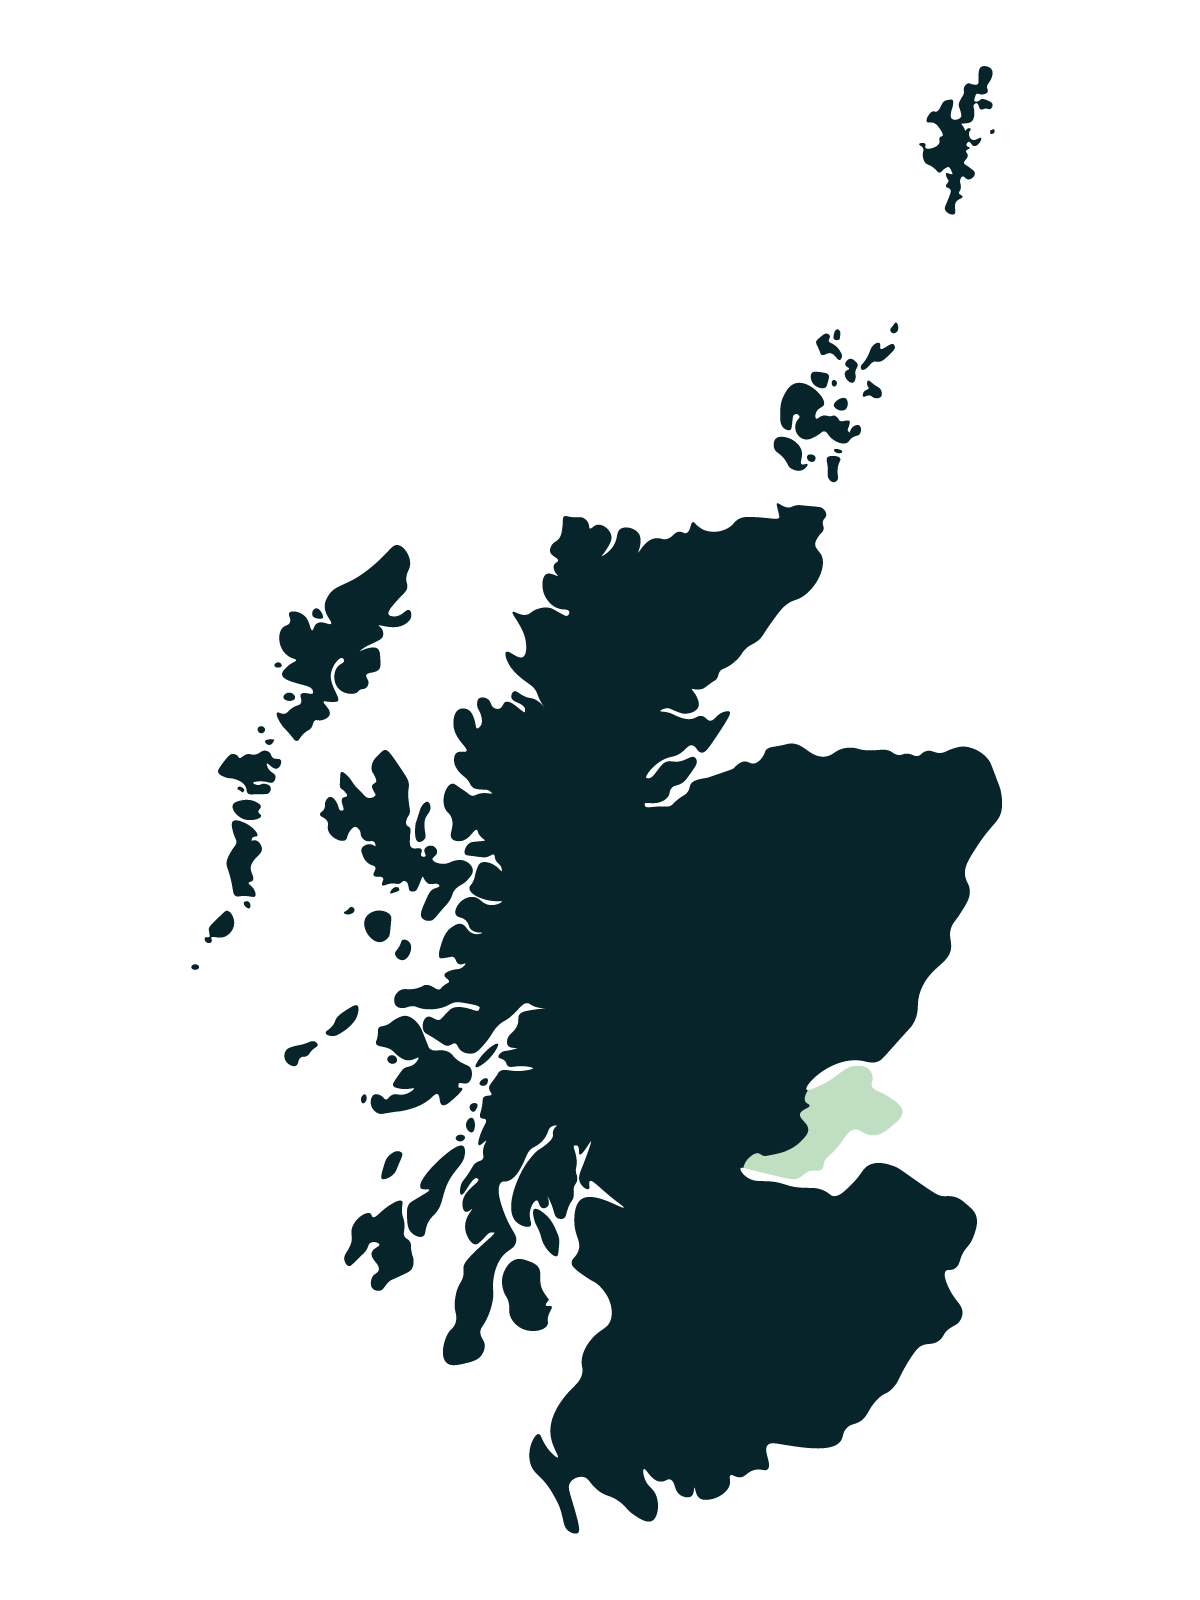 Kingdom of Fife map